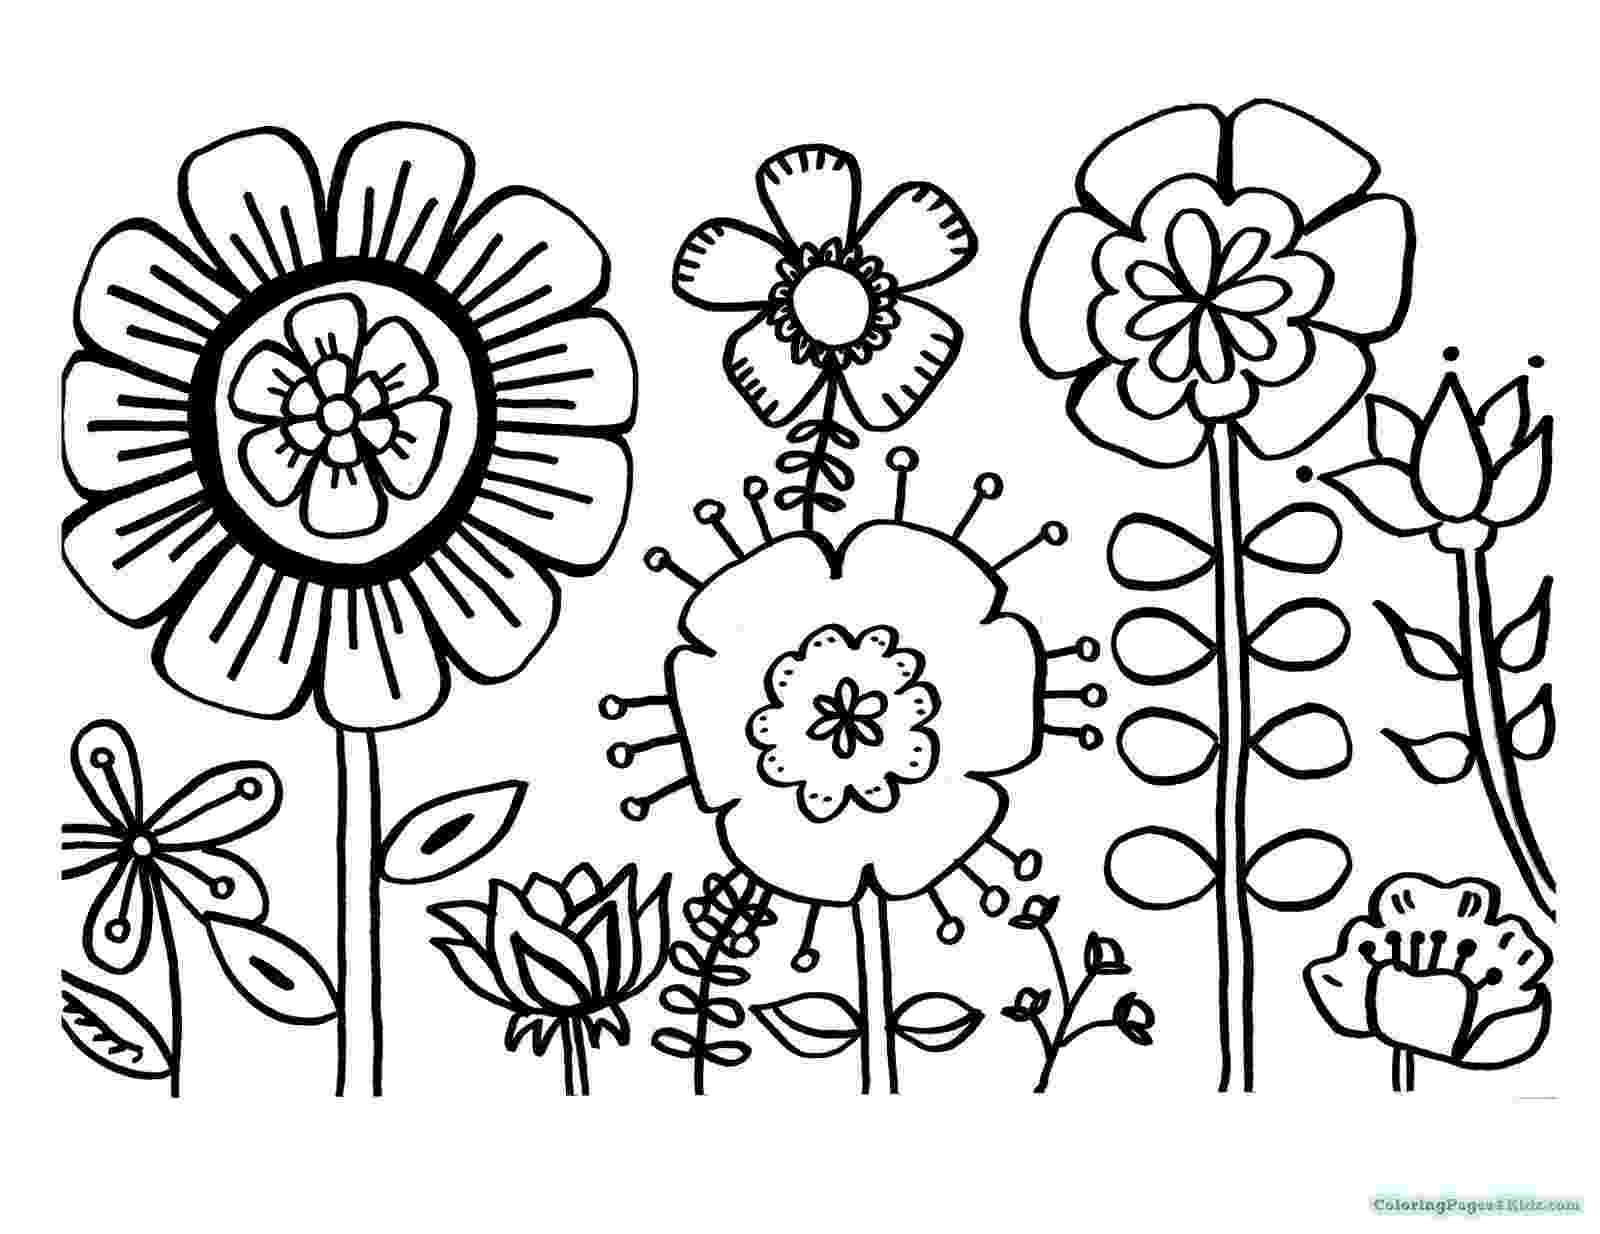 hard design coloring pages difficult disney coloring pages at getcoloringscom free hard pages design coloring